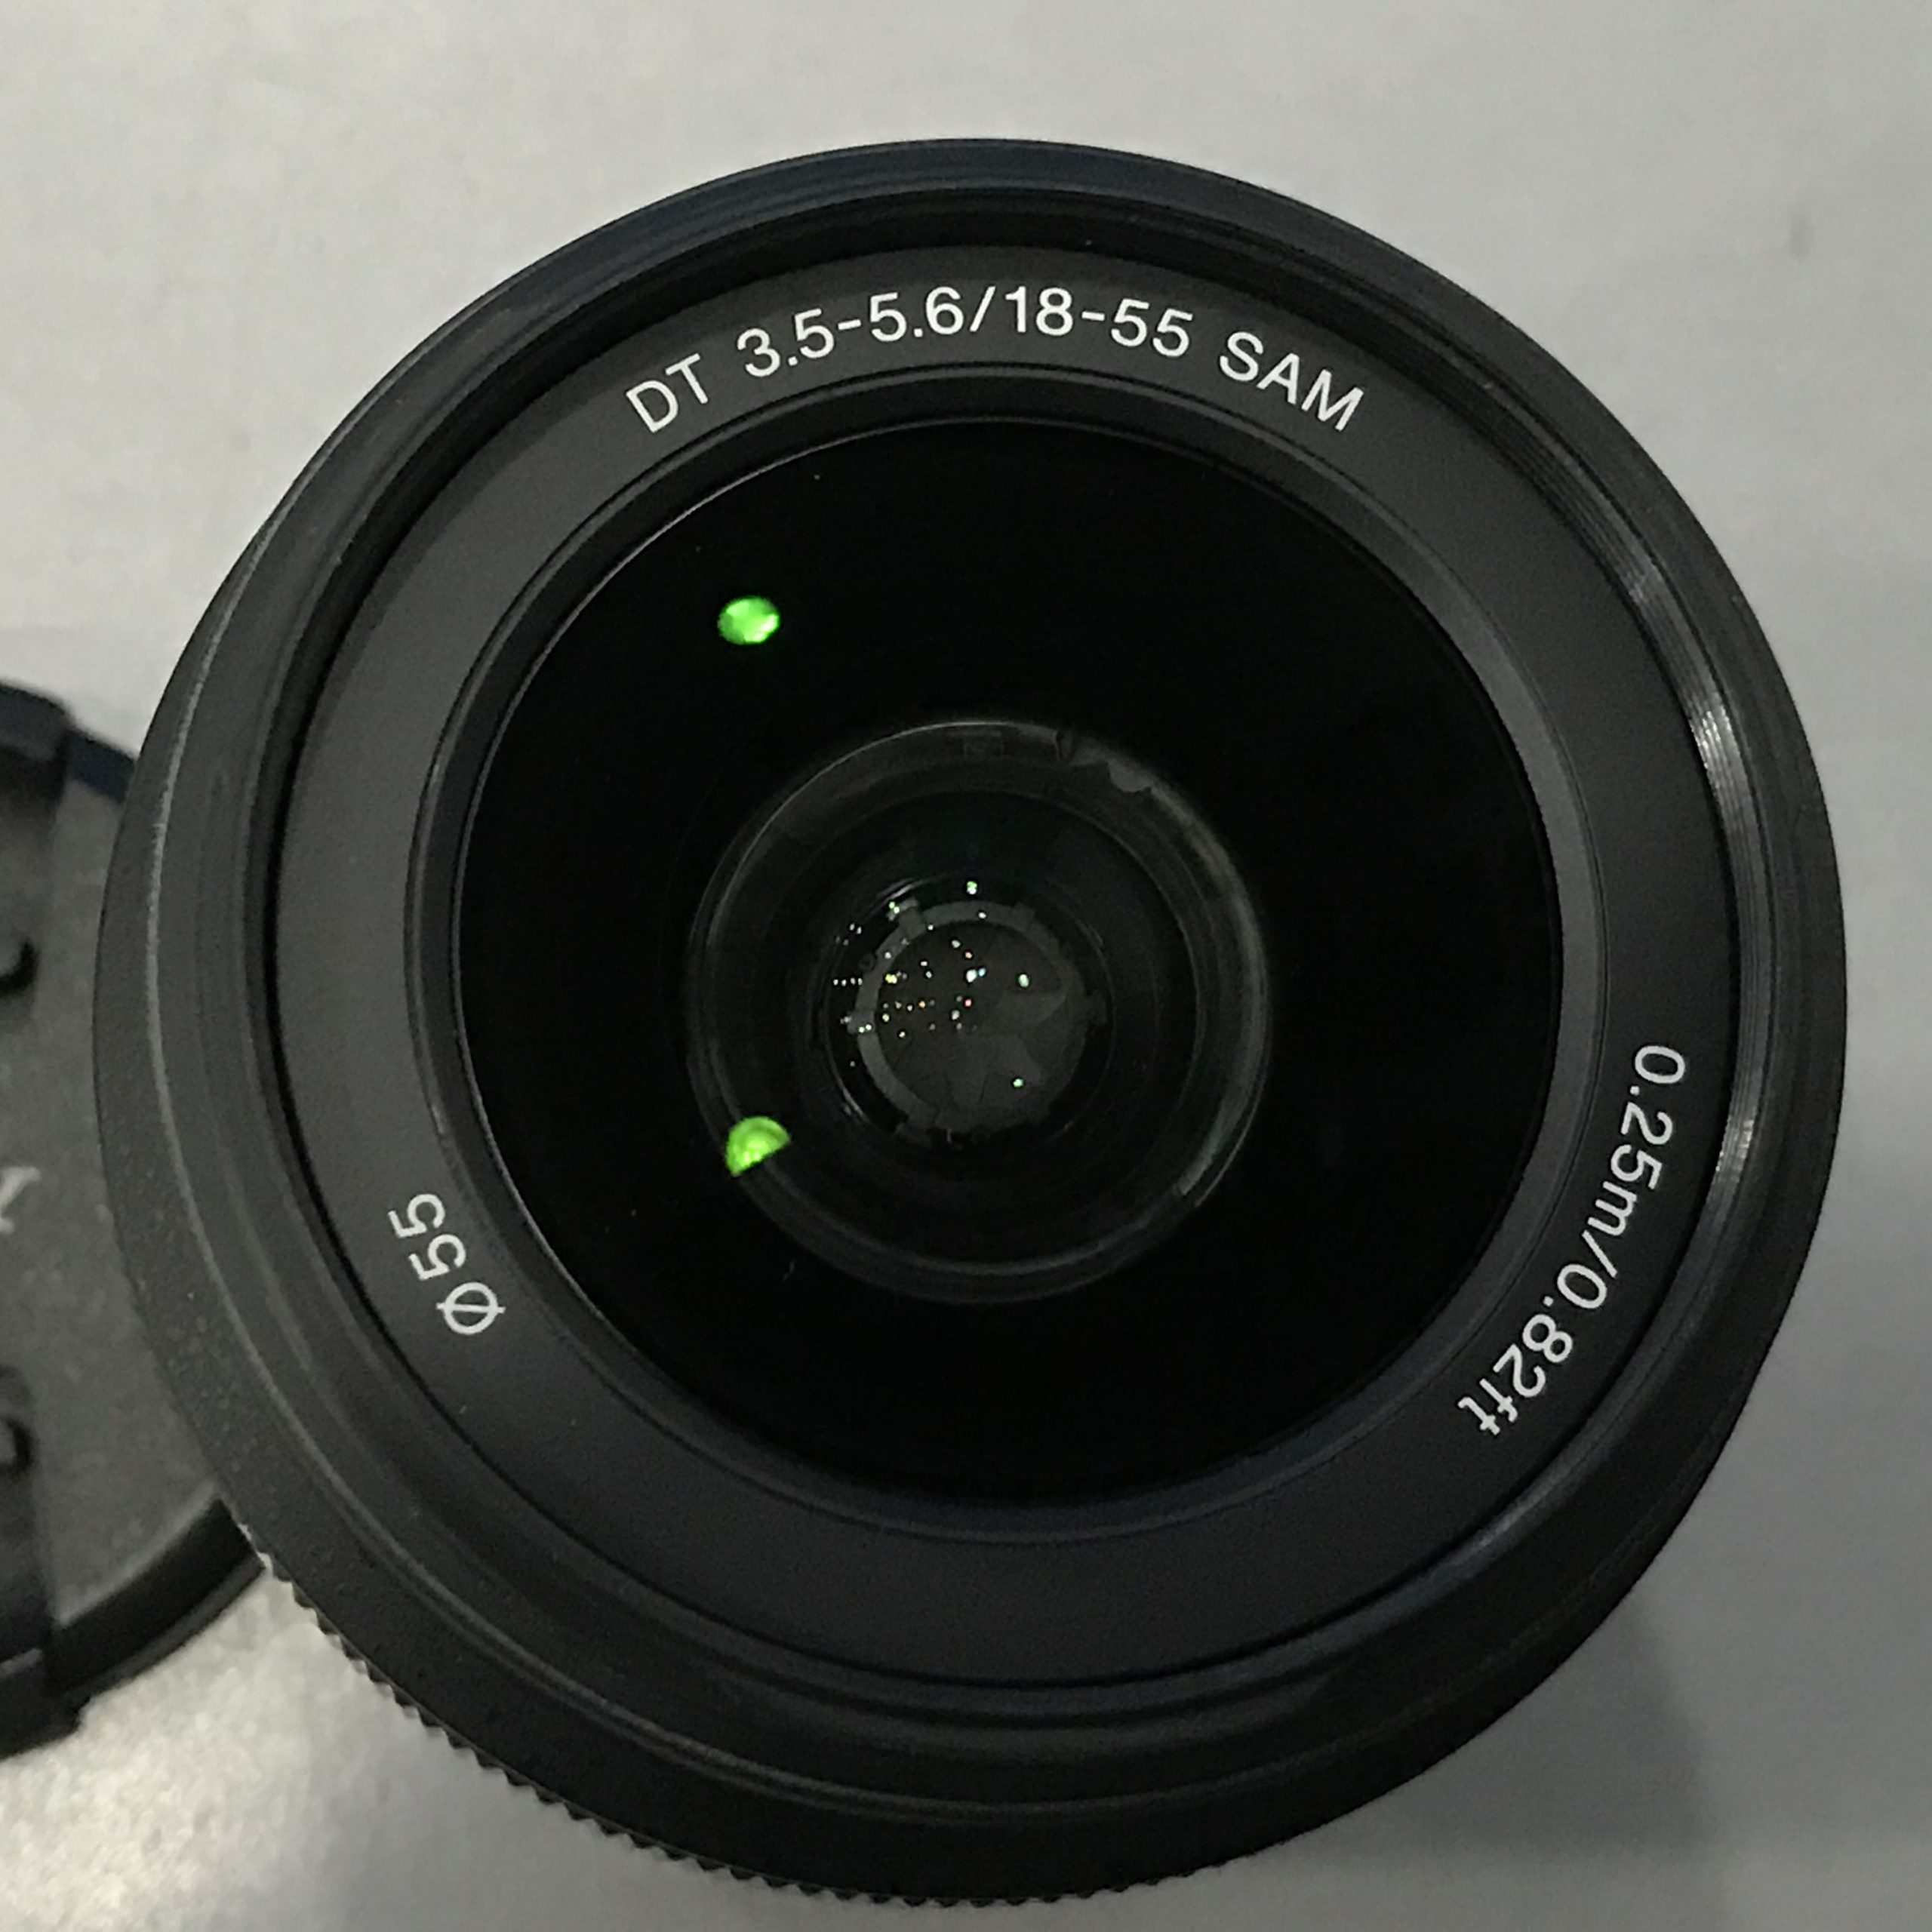 Sony DT 18-55mm f/3.5-5.6 SAM (A-Mount)